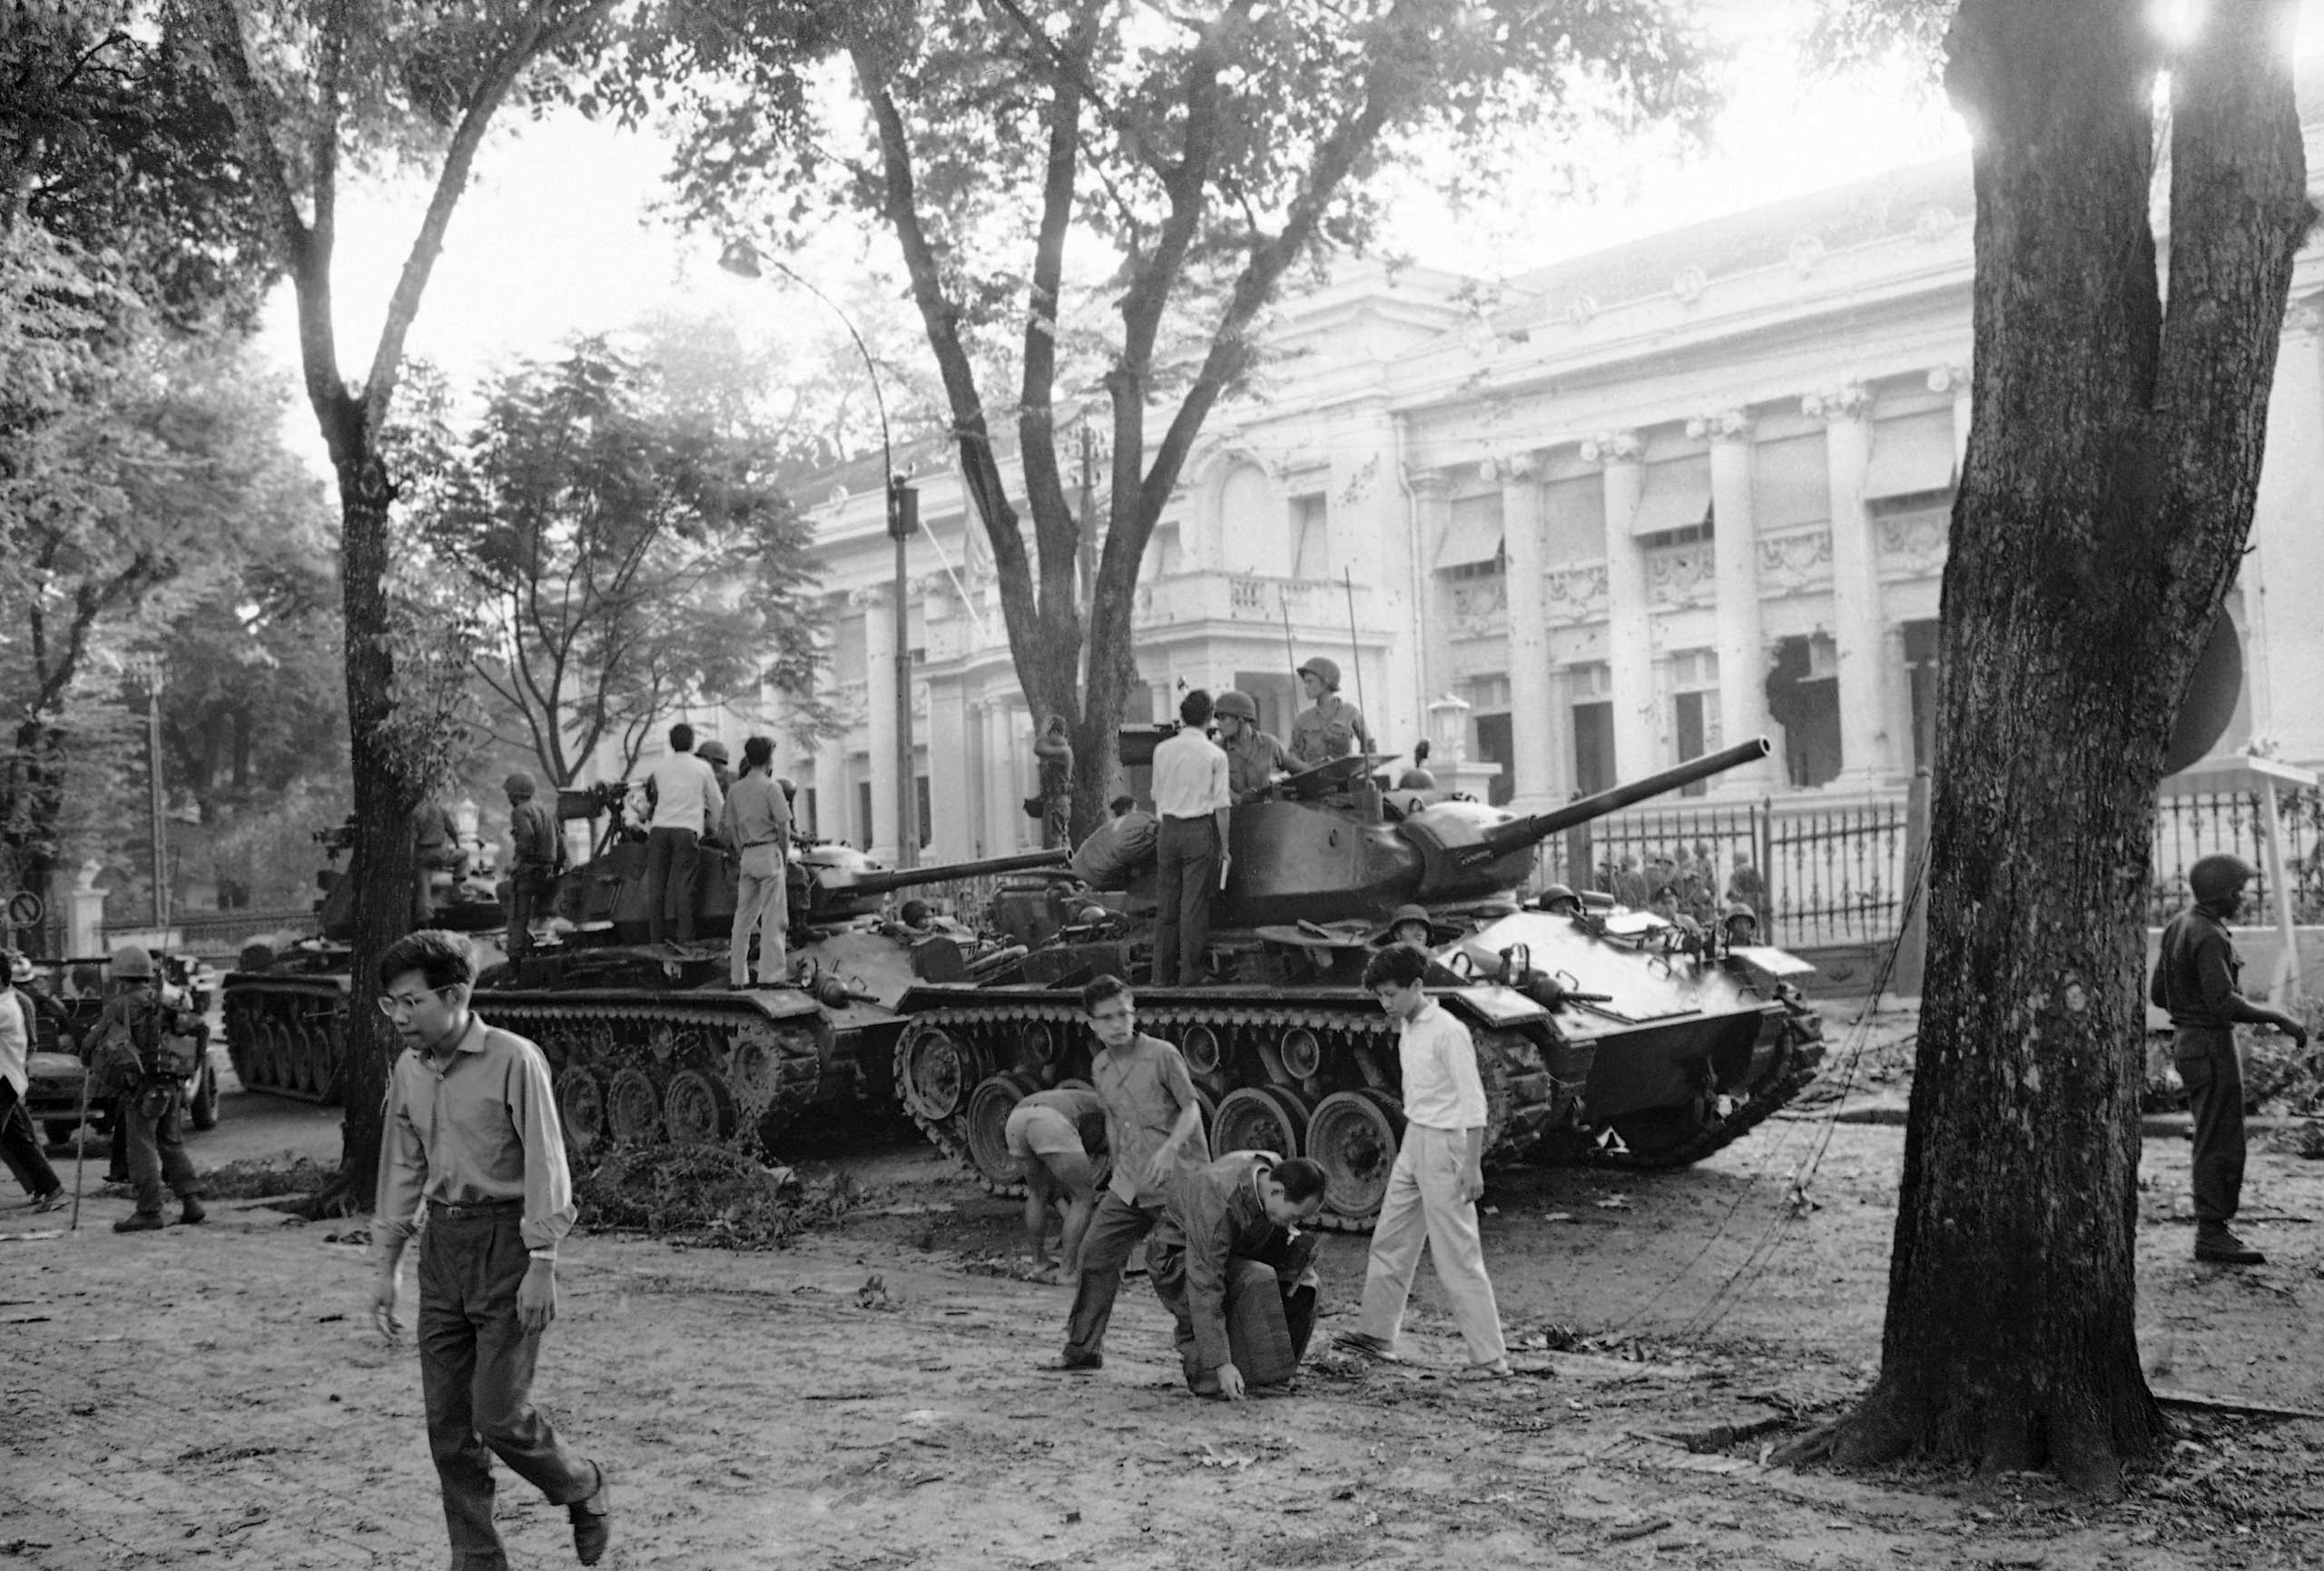 Rebel tanks are drawn up in front of the presidential palace in Saigon, on Nov. 3, 1963, during coup that brought the downfall and death of South Vietnam President Ngo Dinh Diem and his brother Ngo Dinh Nhu.